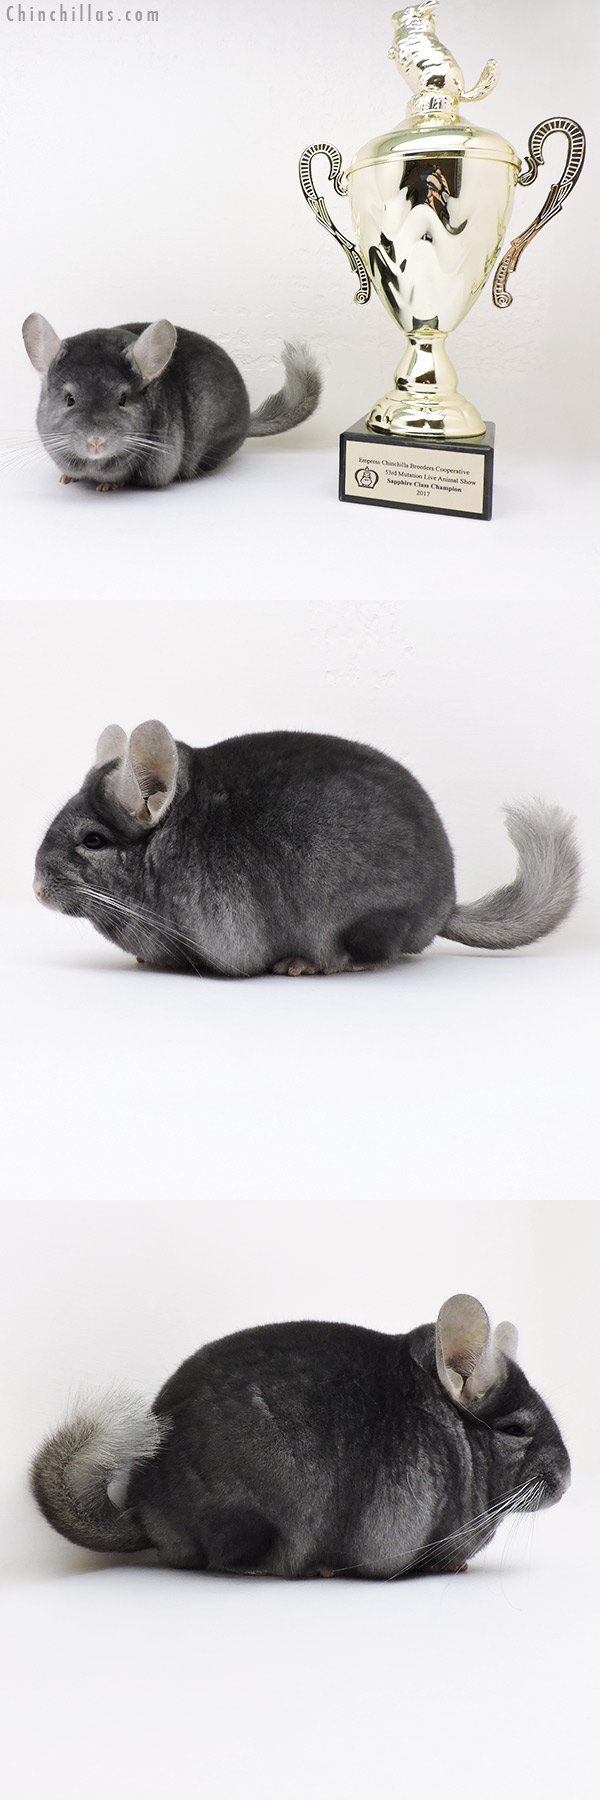 17064 National Class Champion Wrap Around Sapphire Male Chinchilla